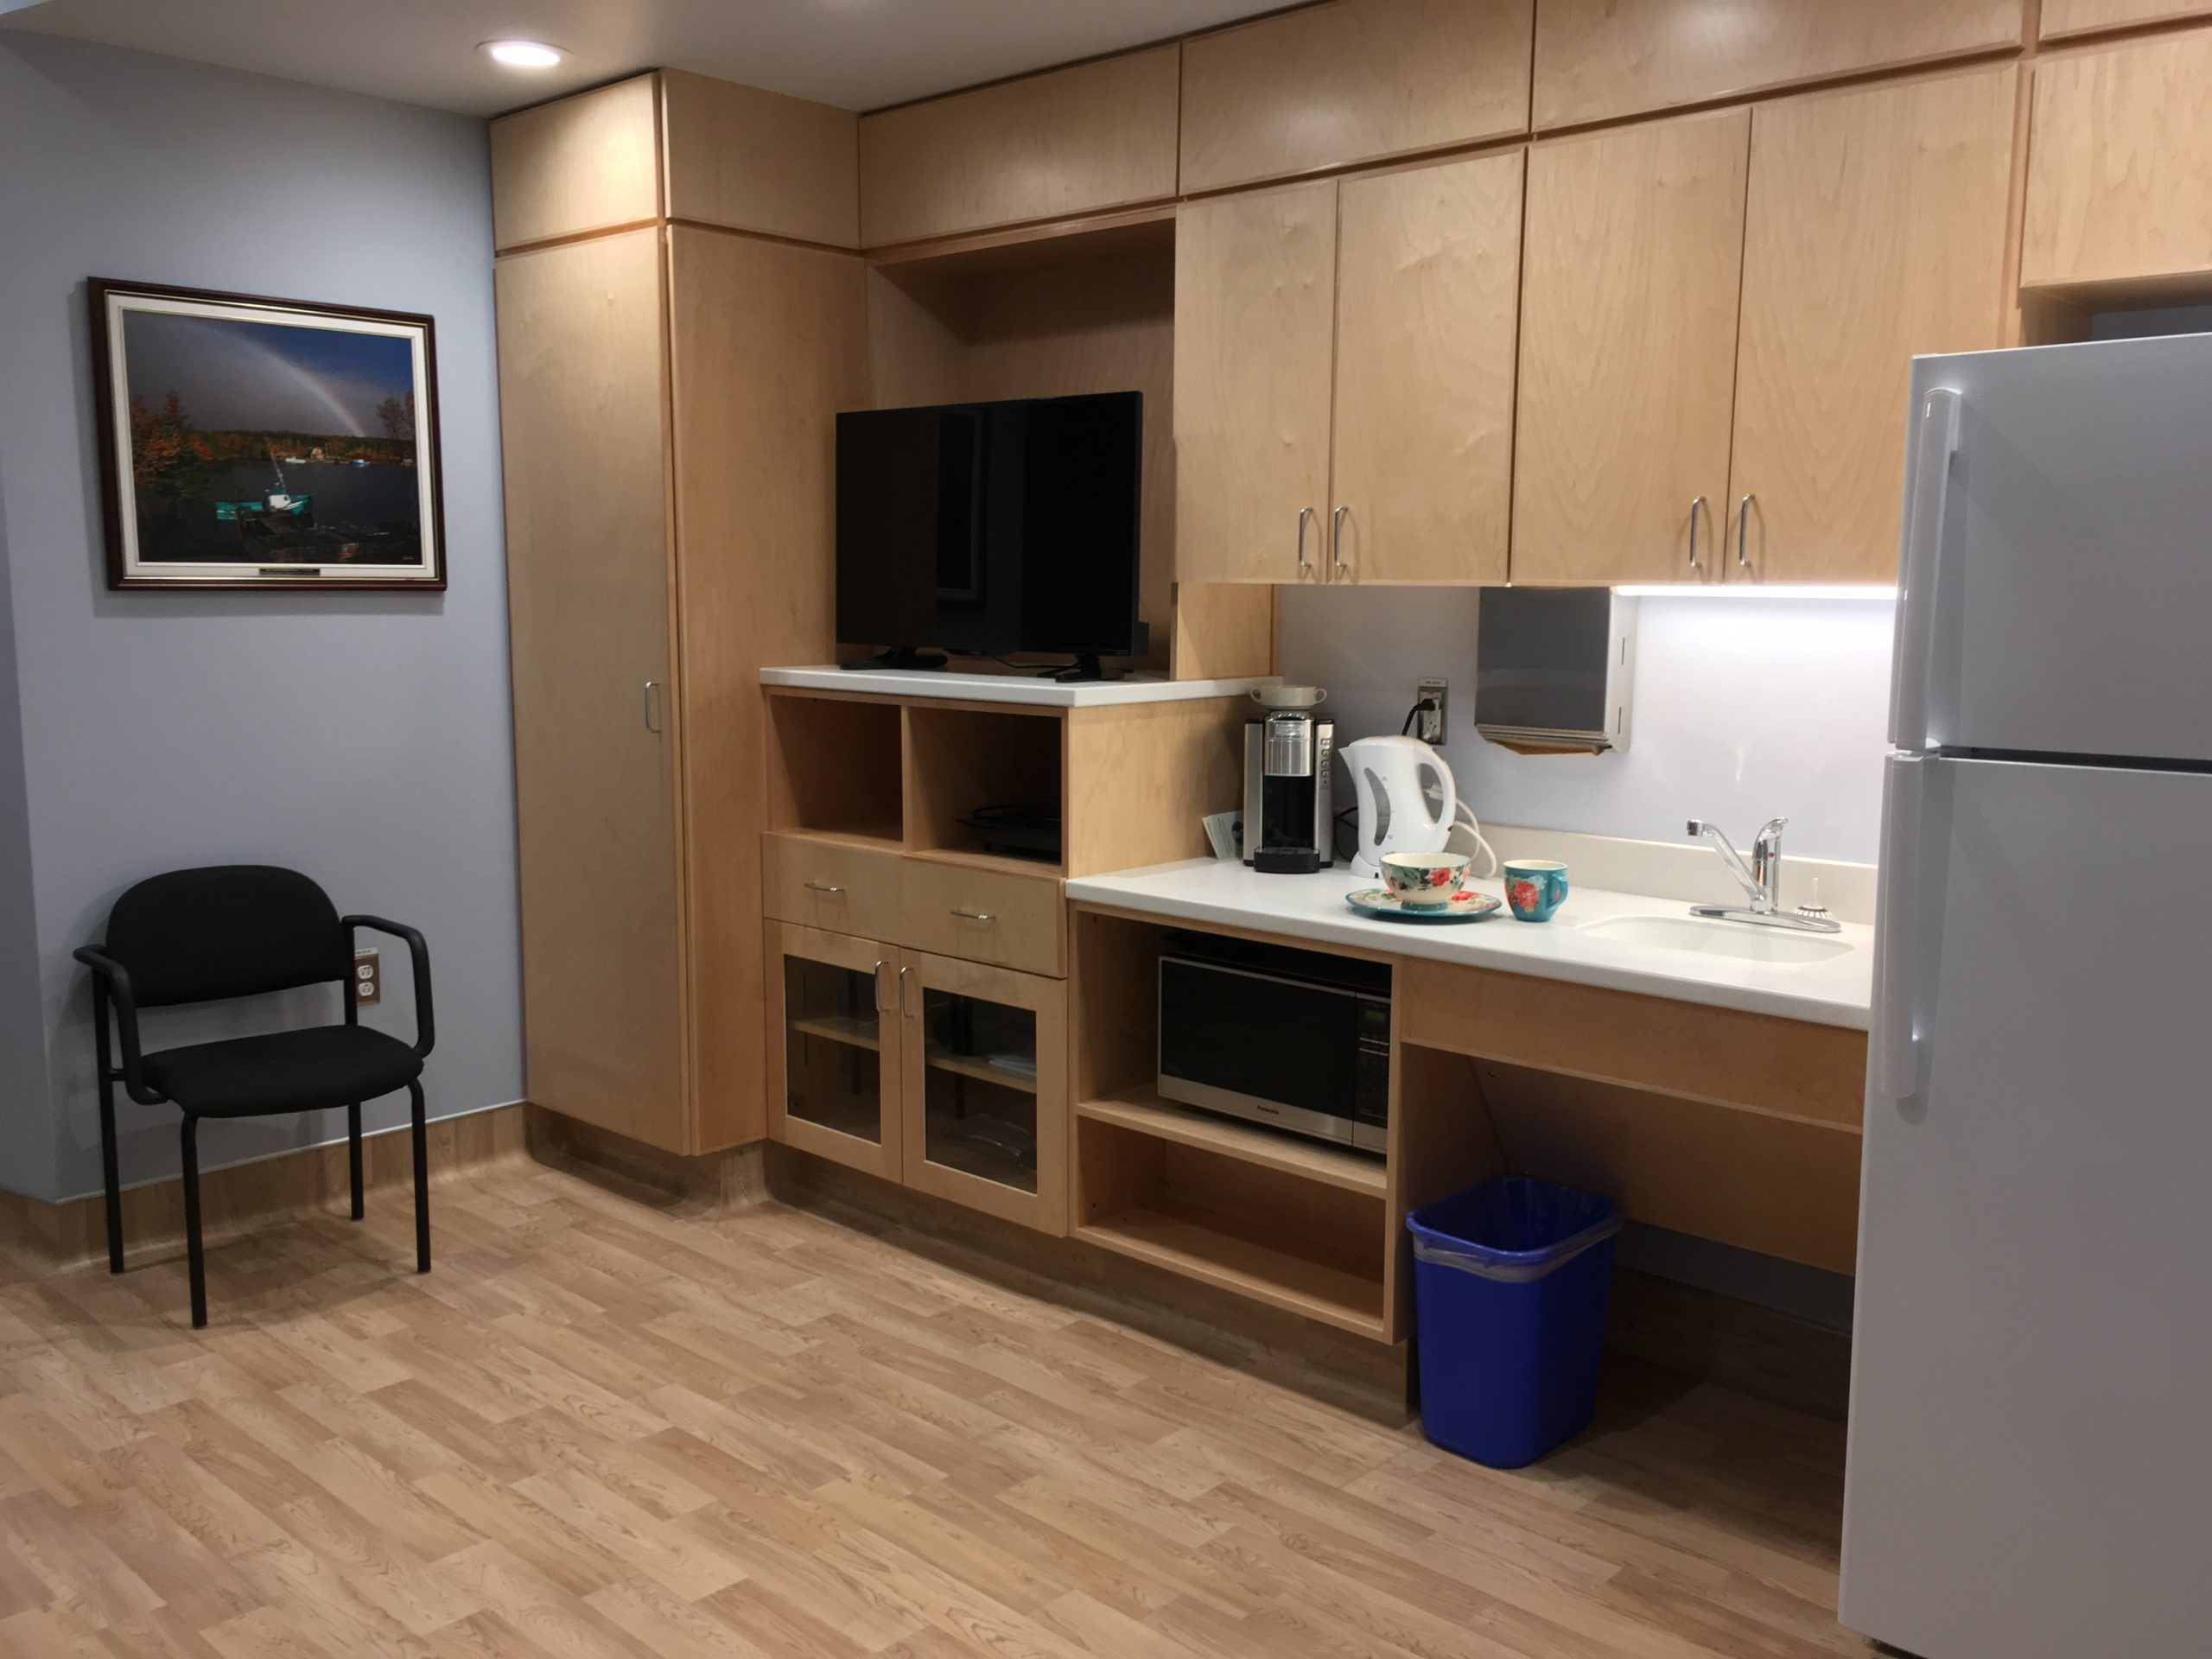 Warden says palliative care family room is great addition to Inverness hospital